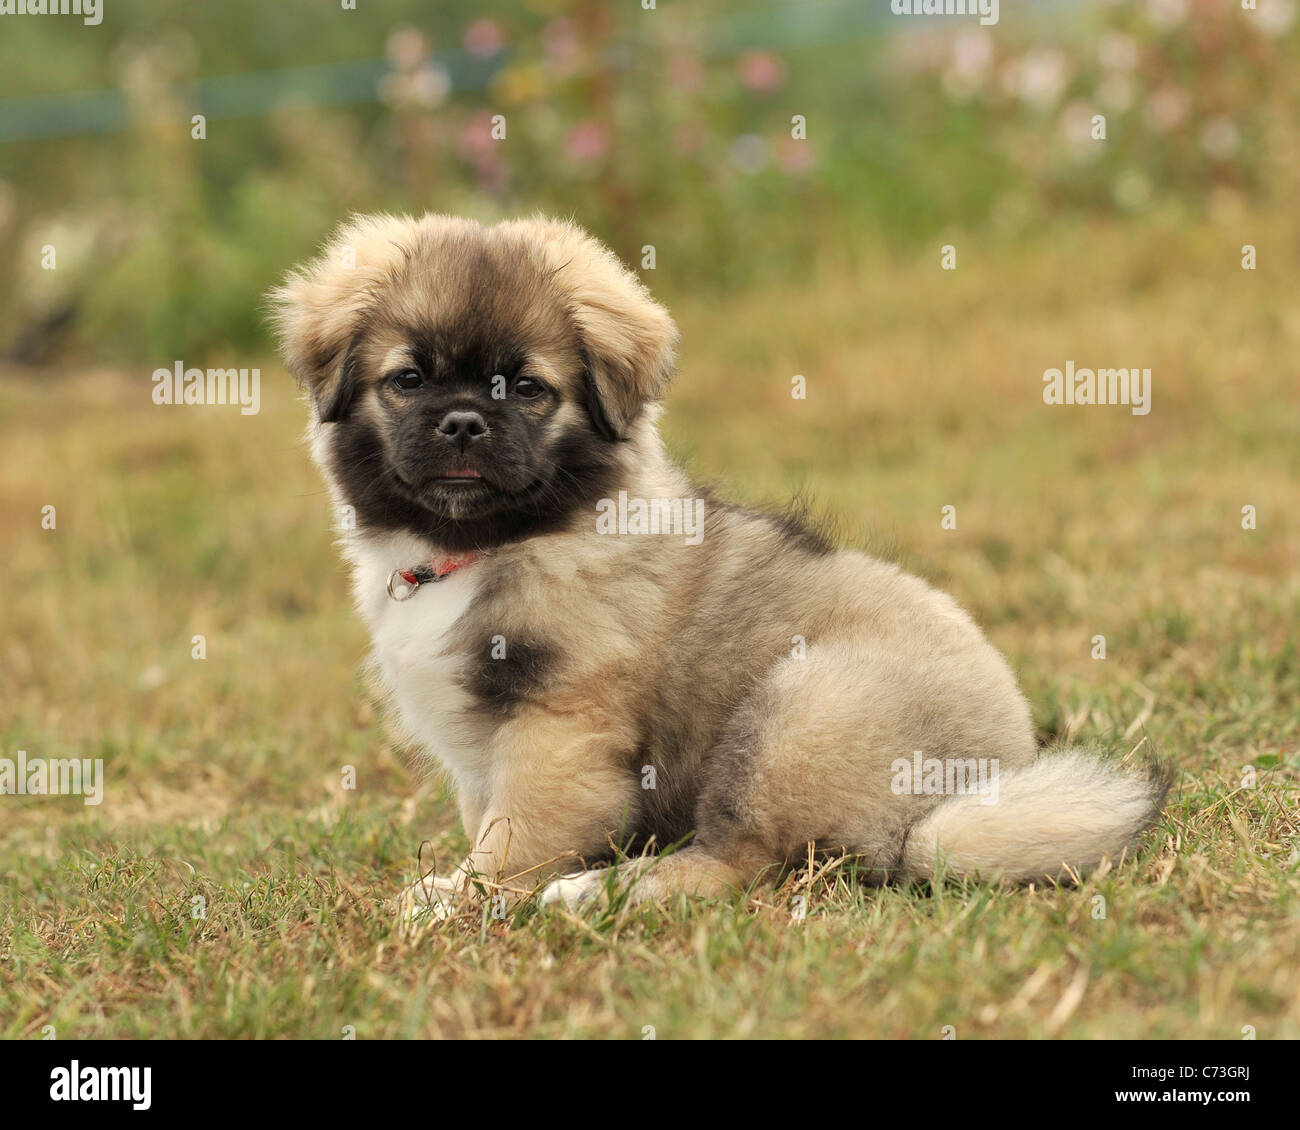 Tibetan Spaniel Puppy Stock Photo Alamy